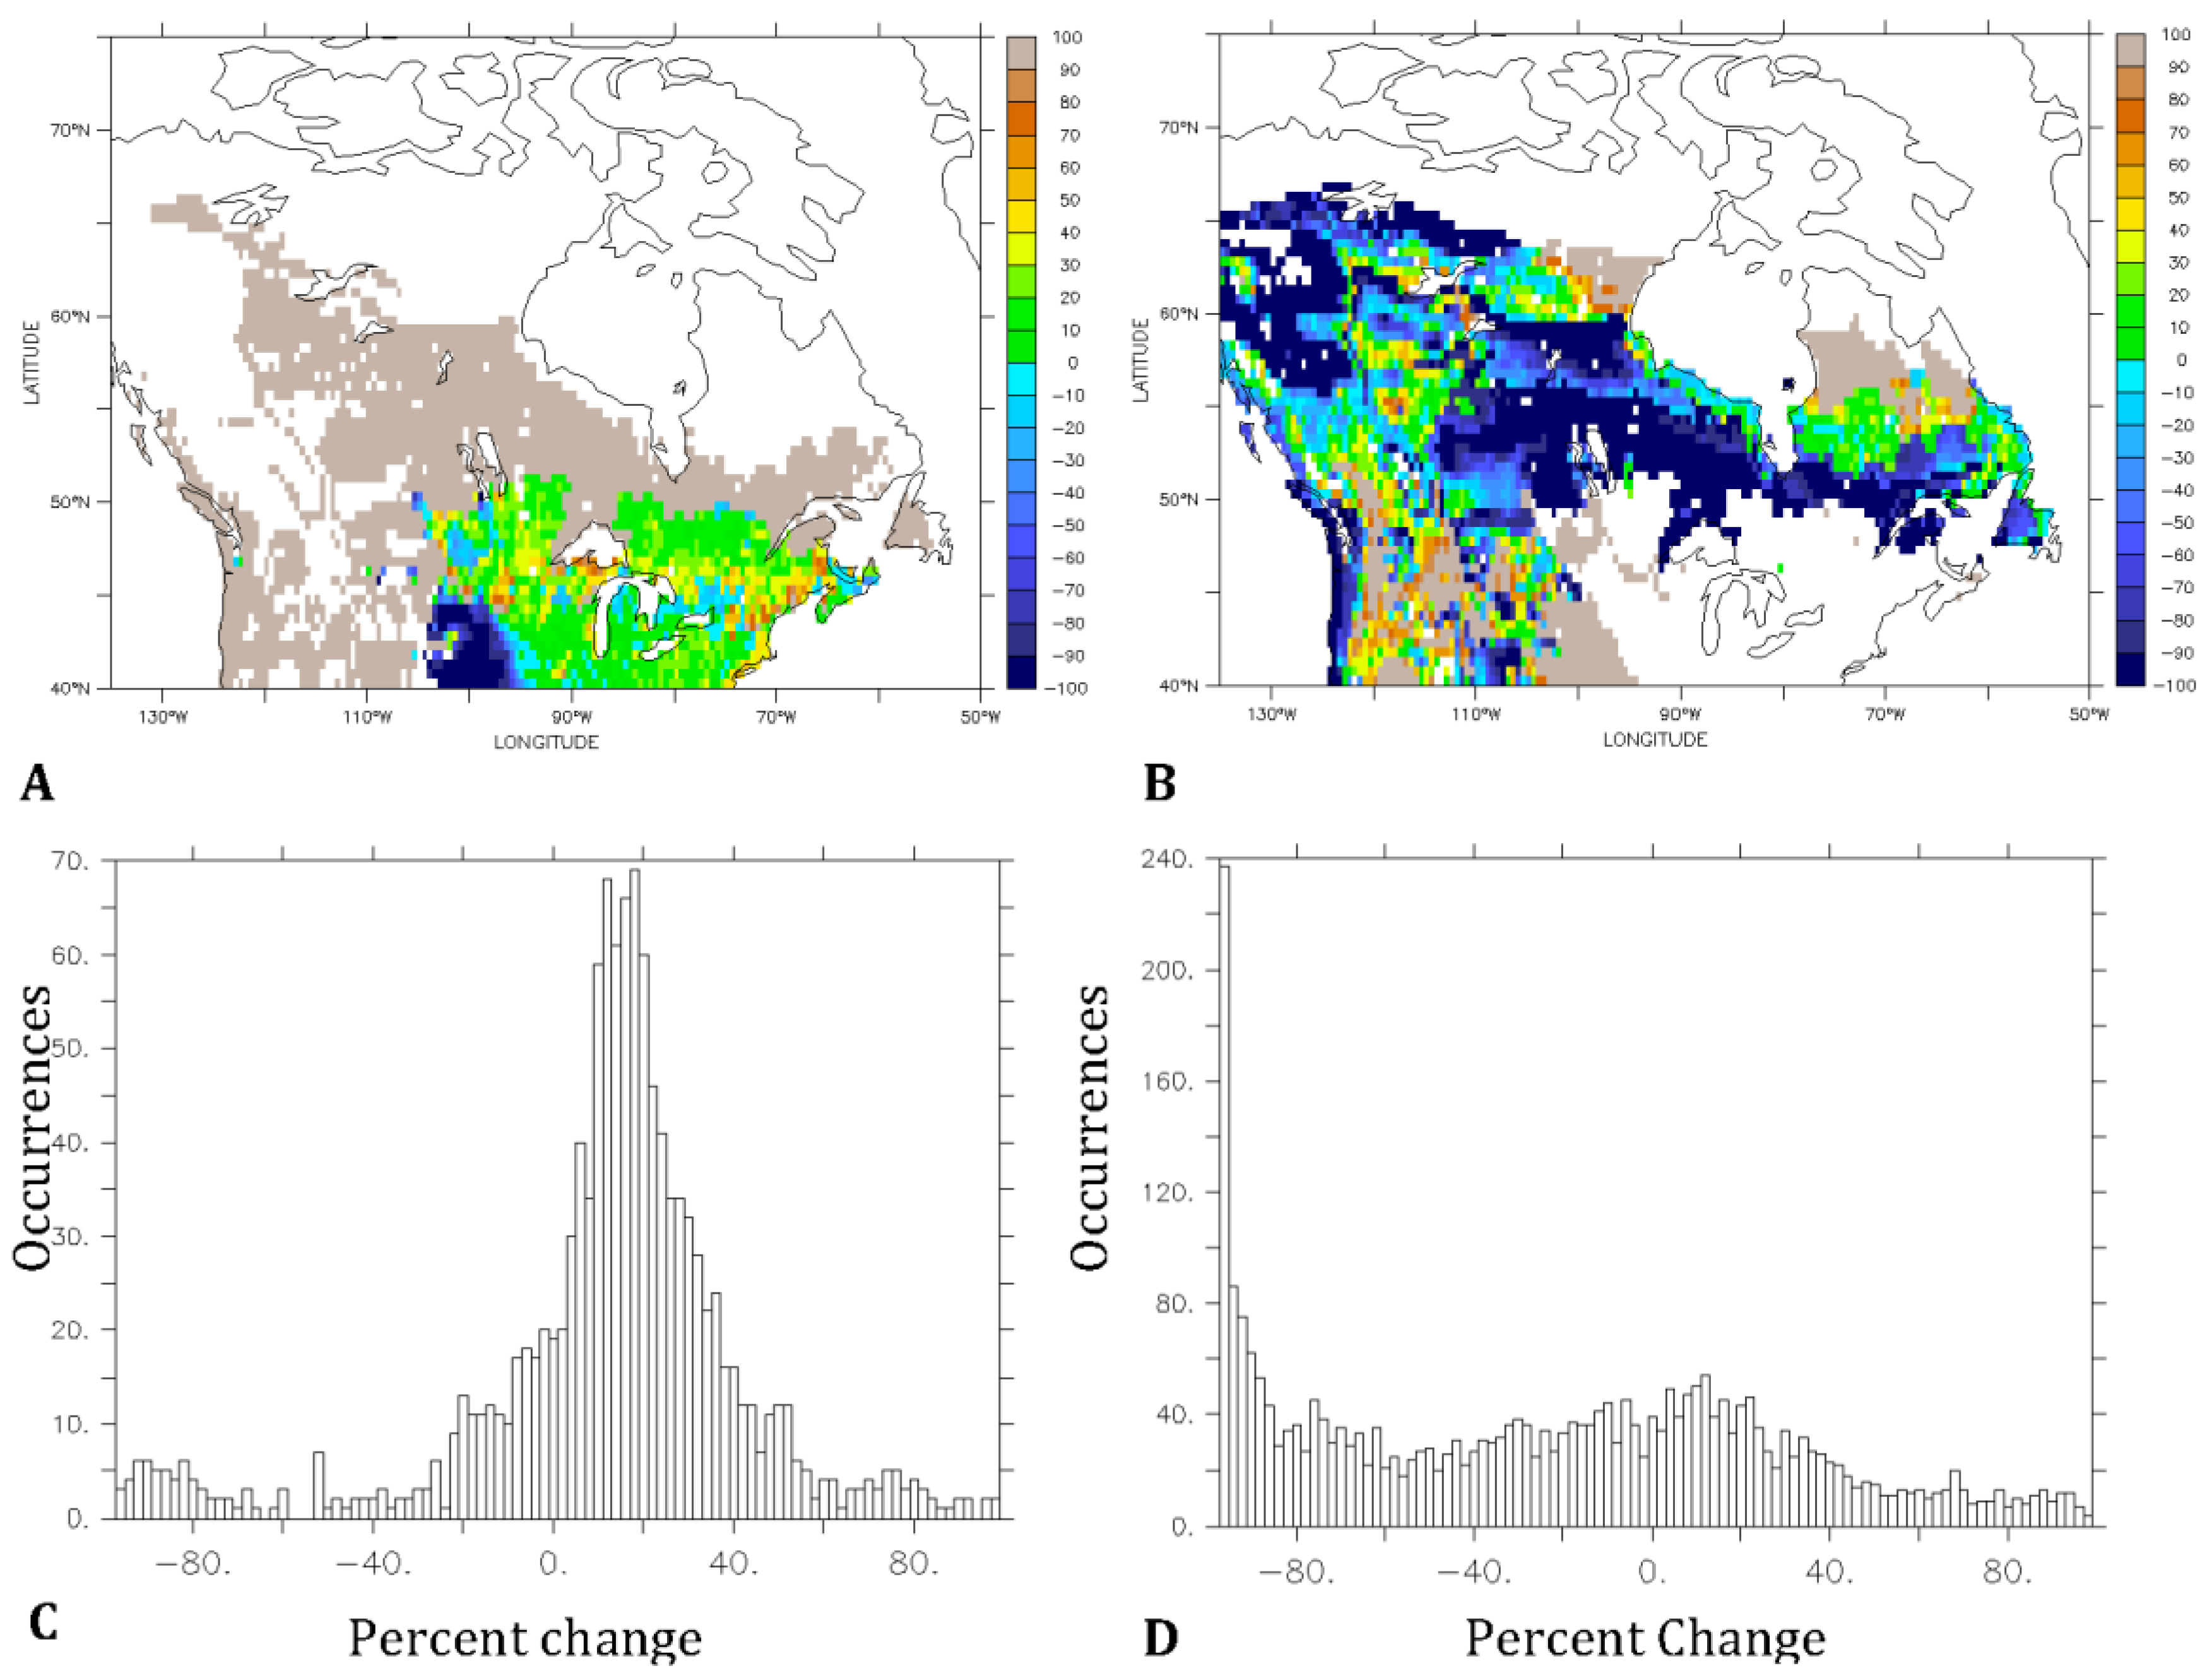 Climate Free FullText Potential Vegetation and Carbon